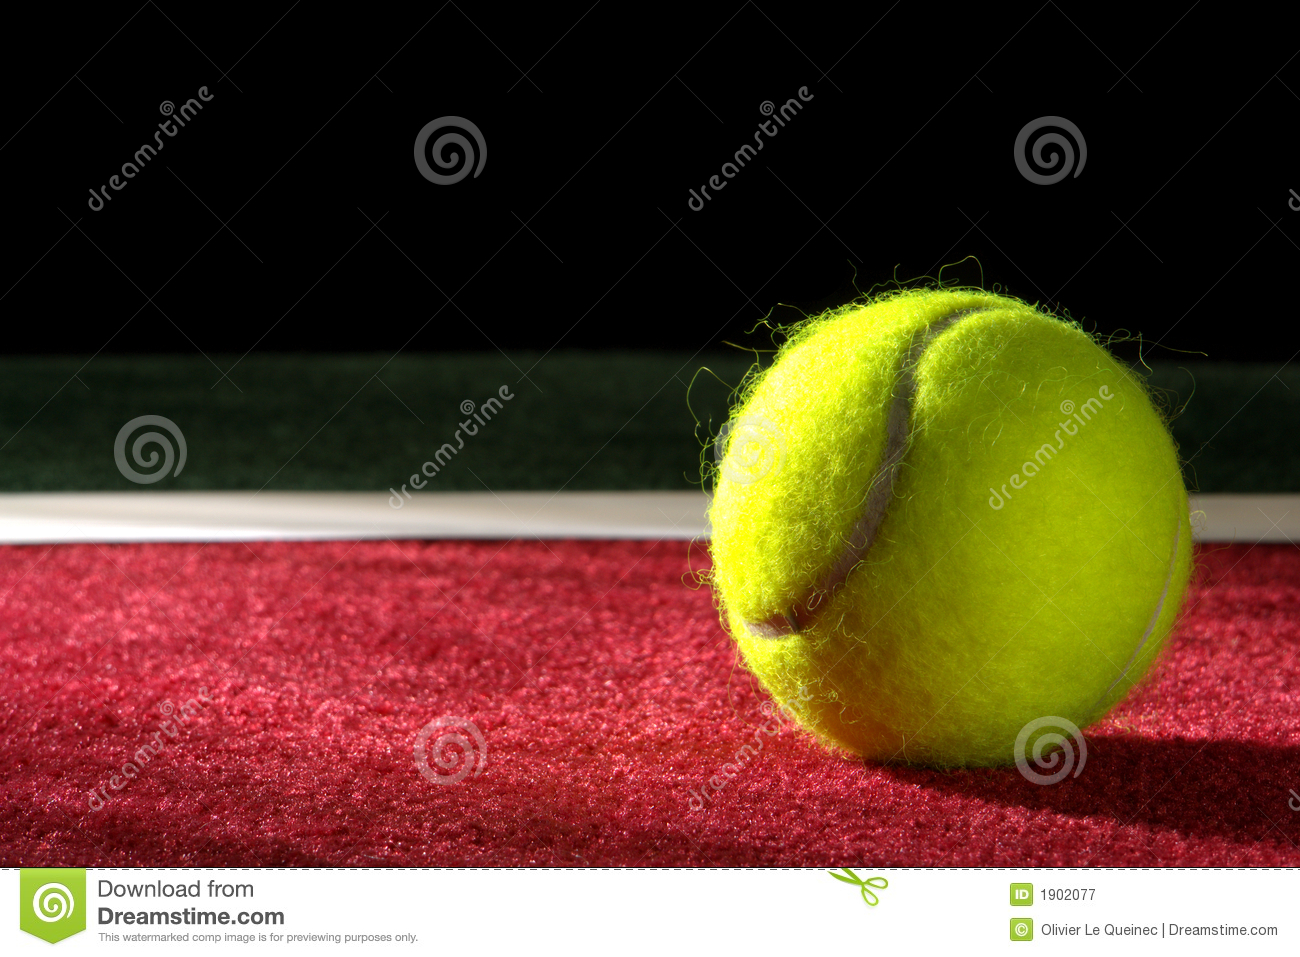 Tennis Ball On A Court Royalty Free Stock Photography - Image: 1902077